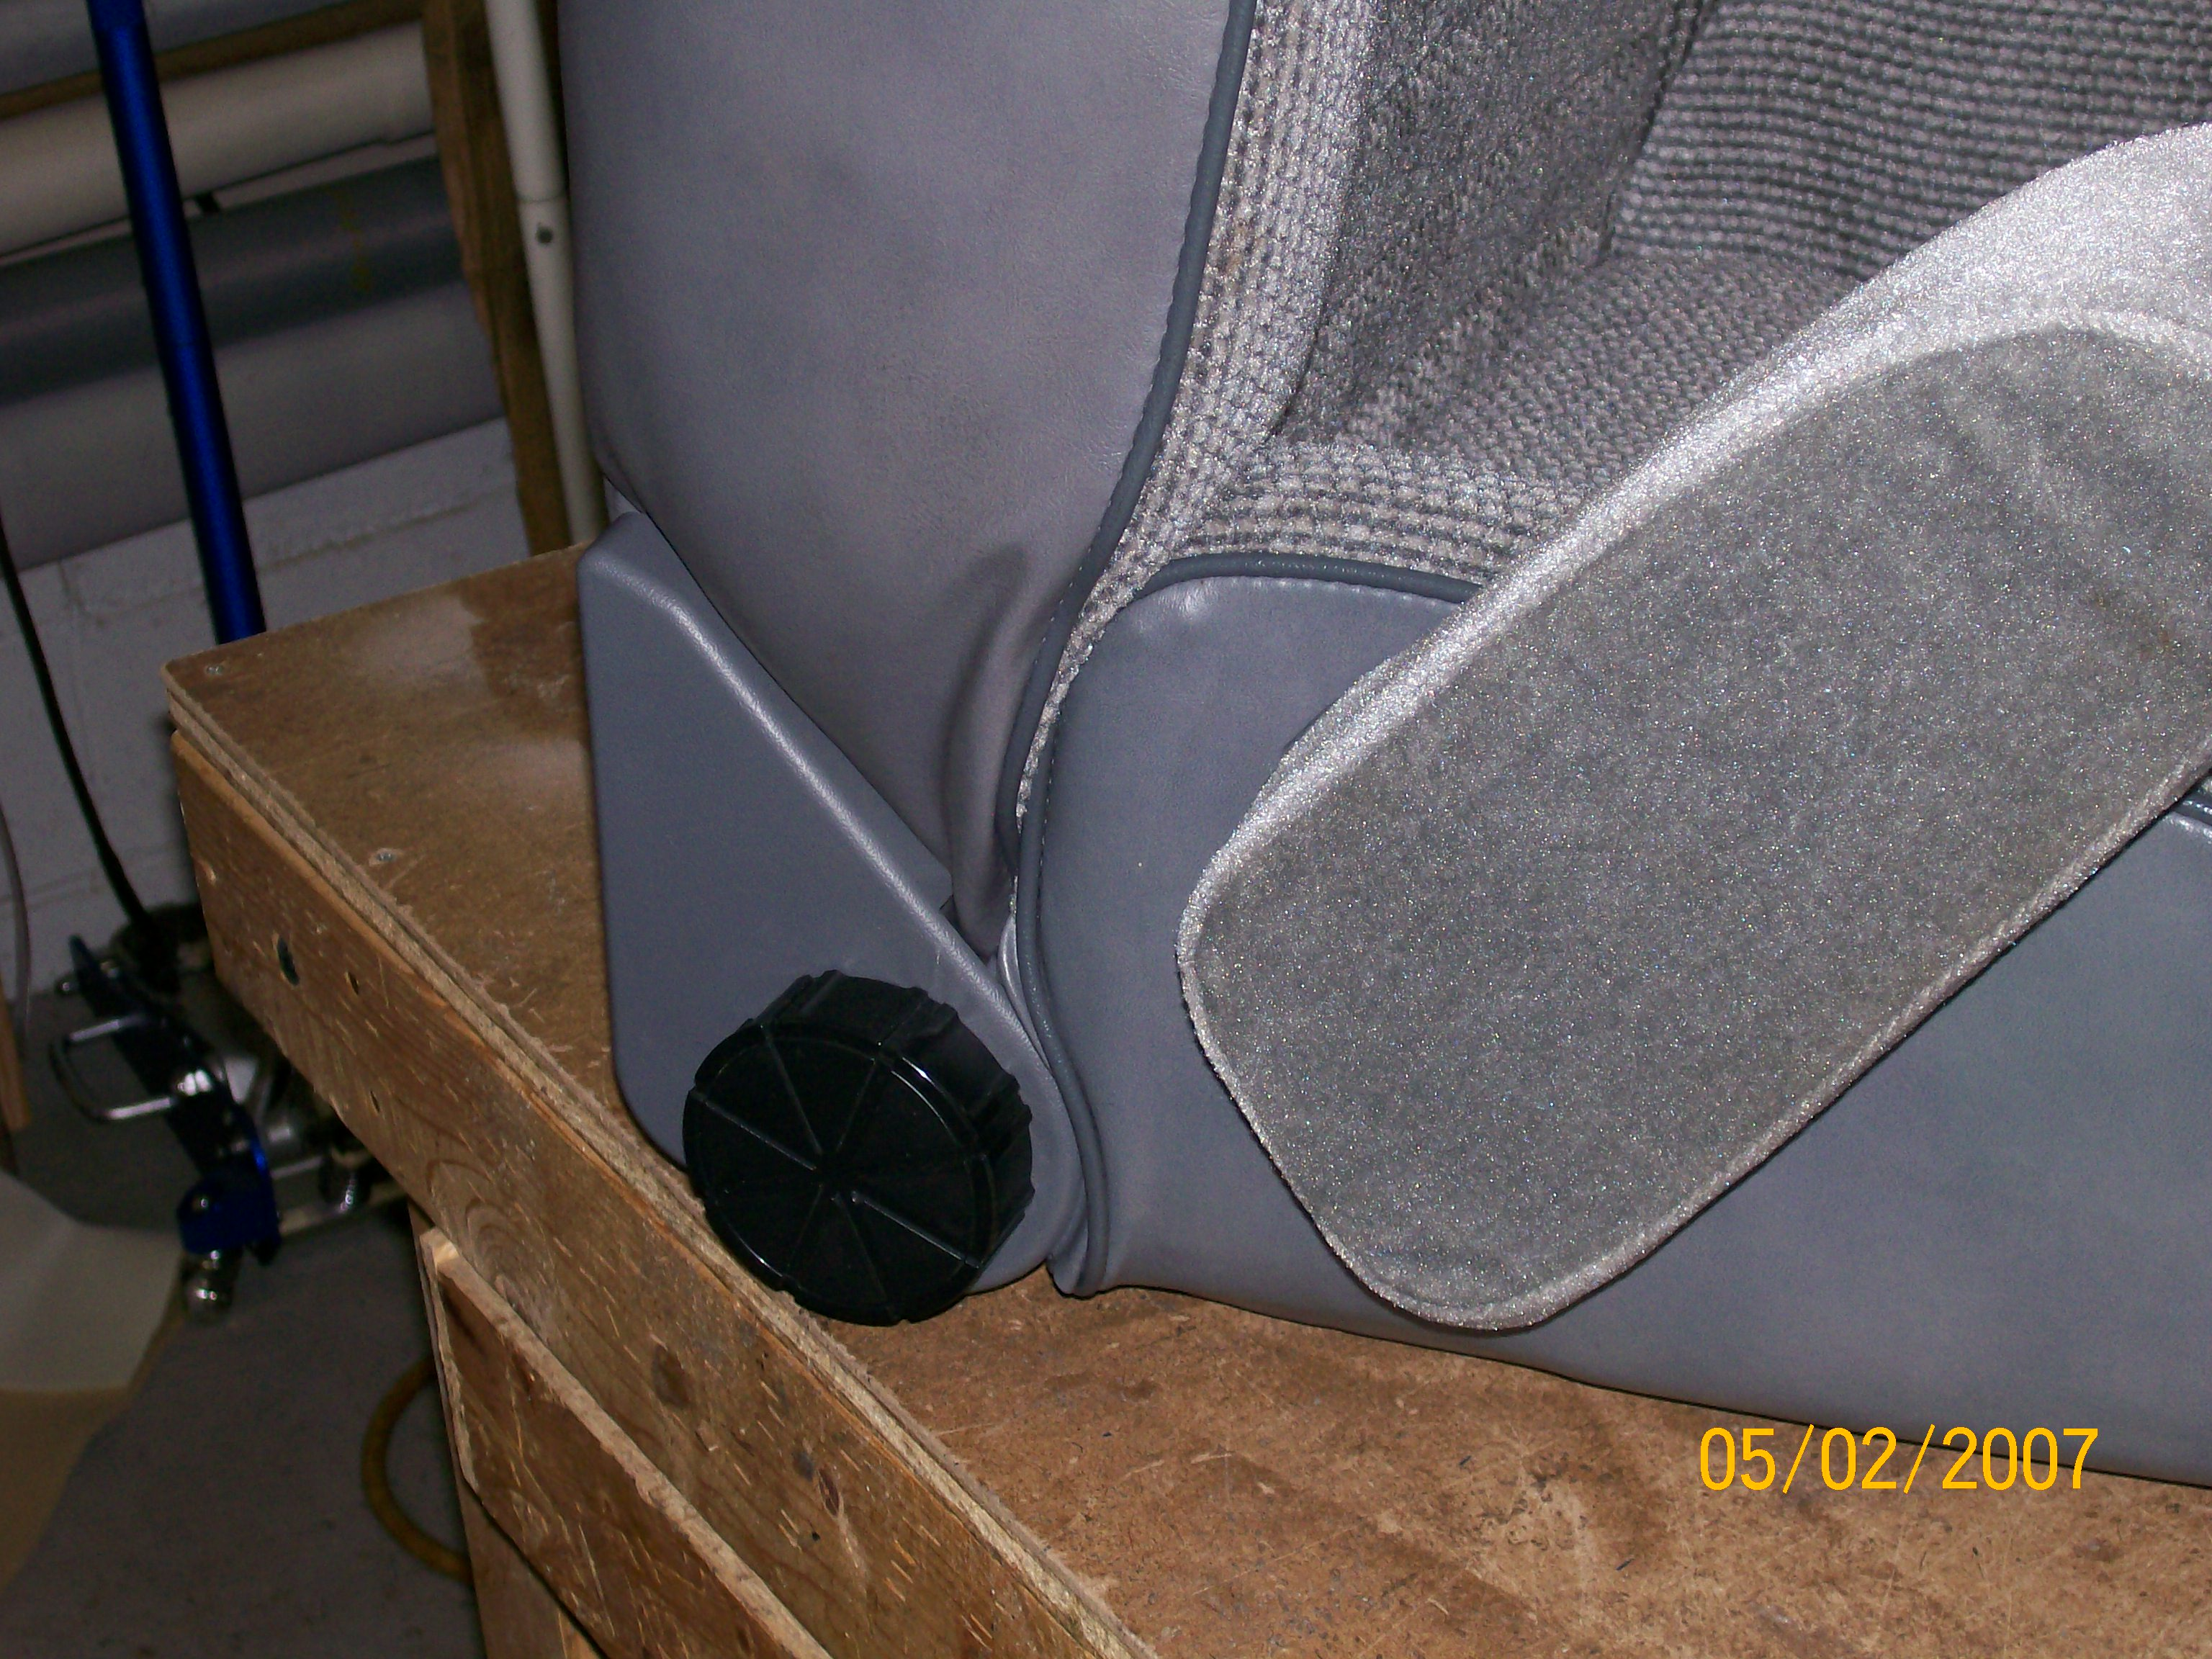 Click image for larger version  Name:Astro Seat 001.jpg Views:394 Size:1.14 MB ID:60963